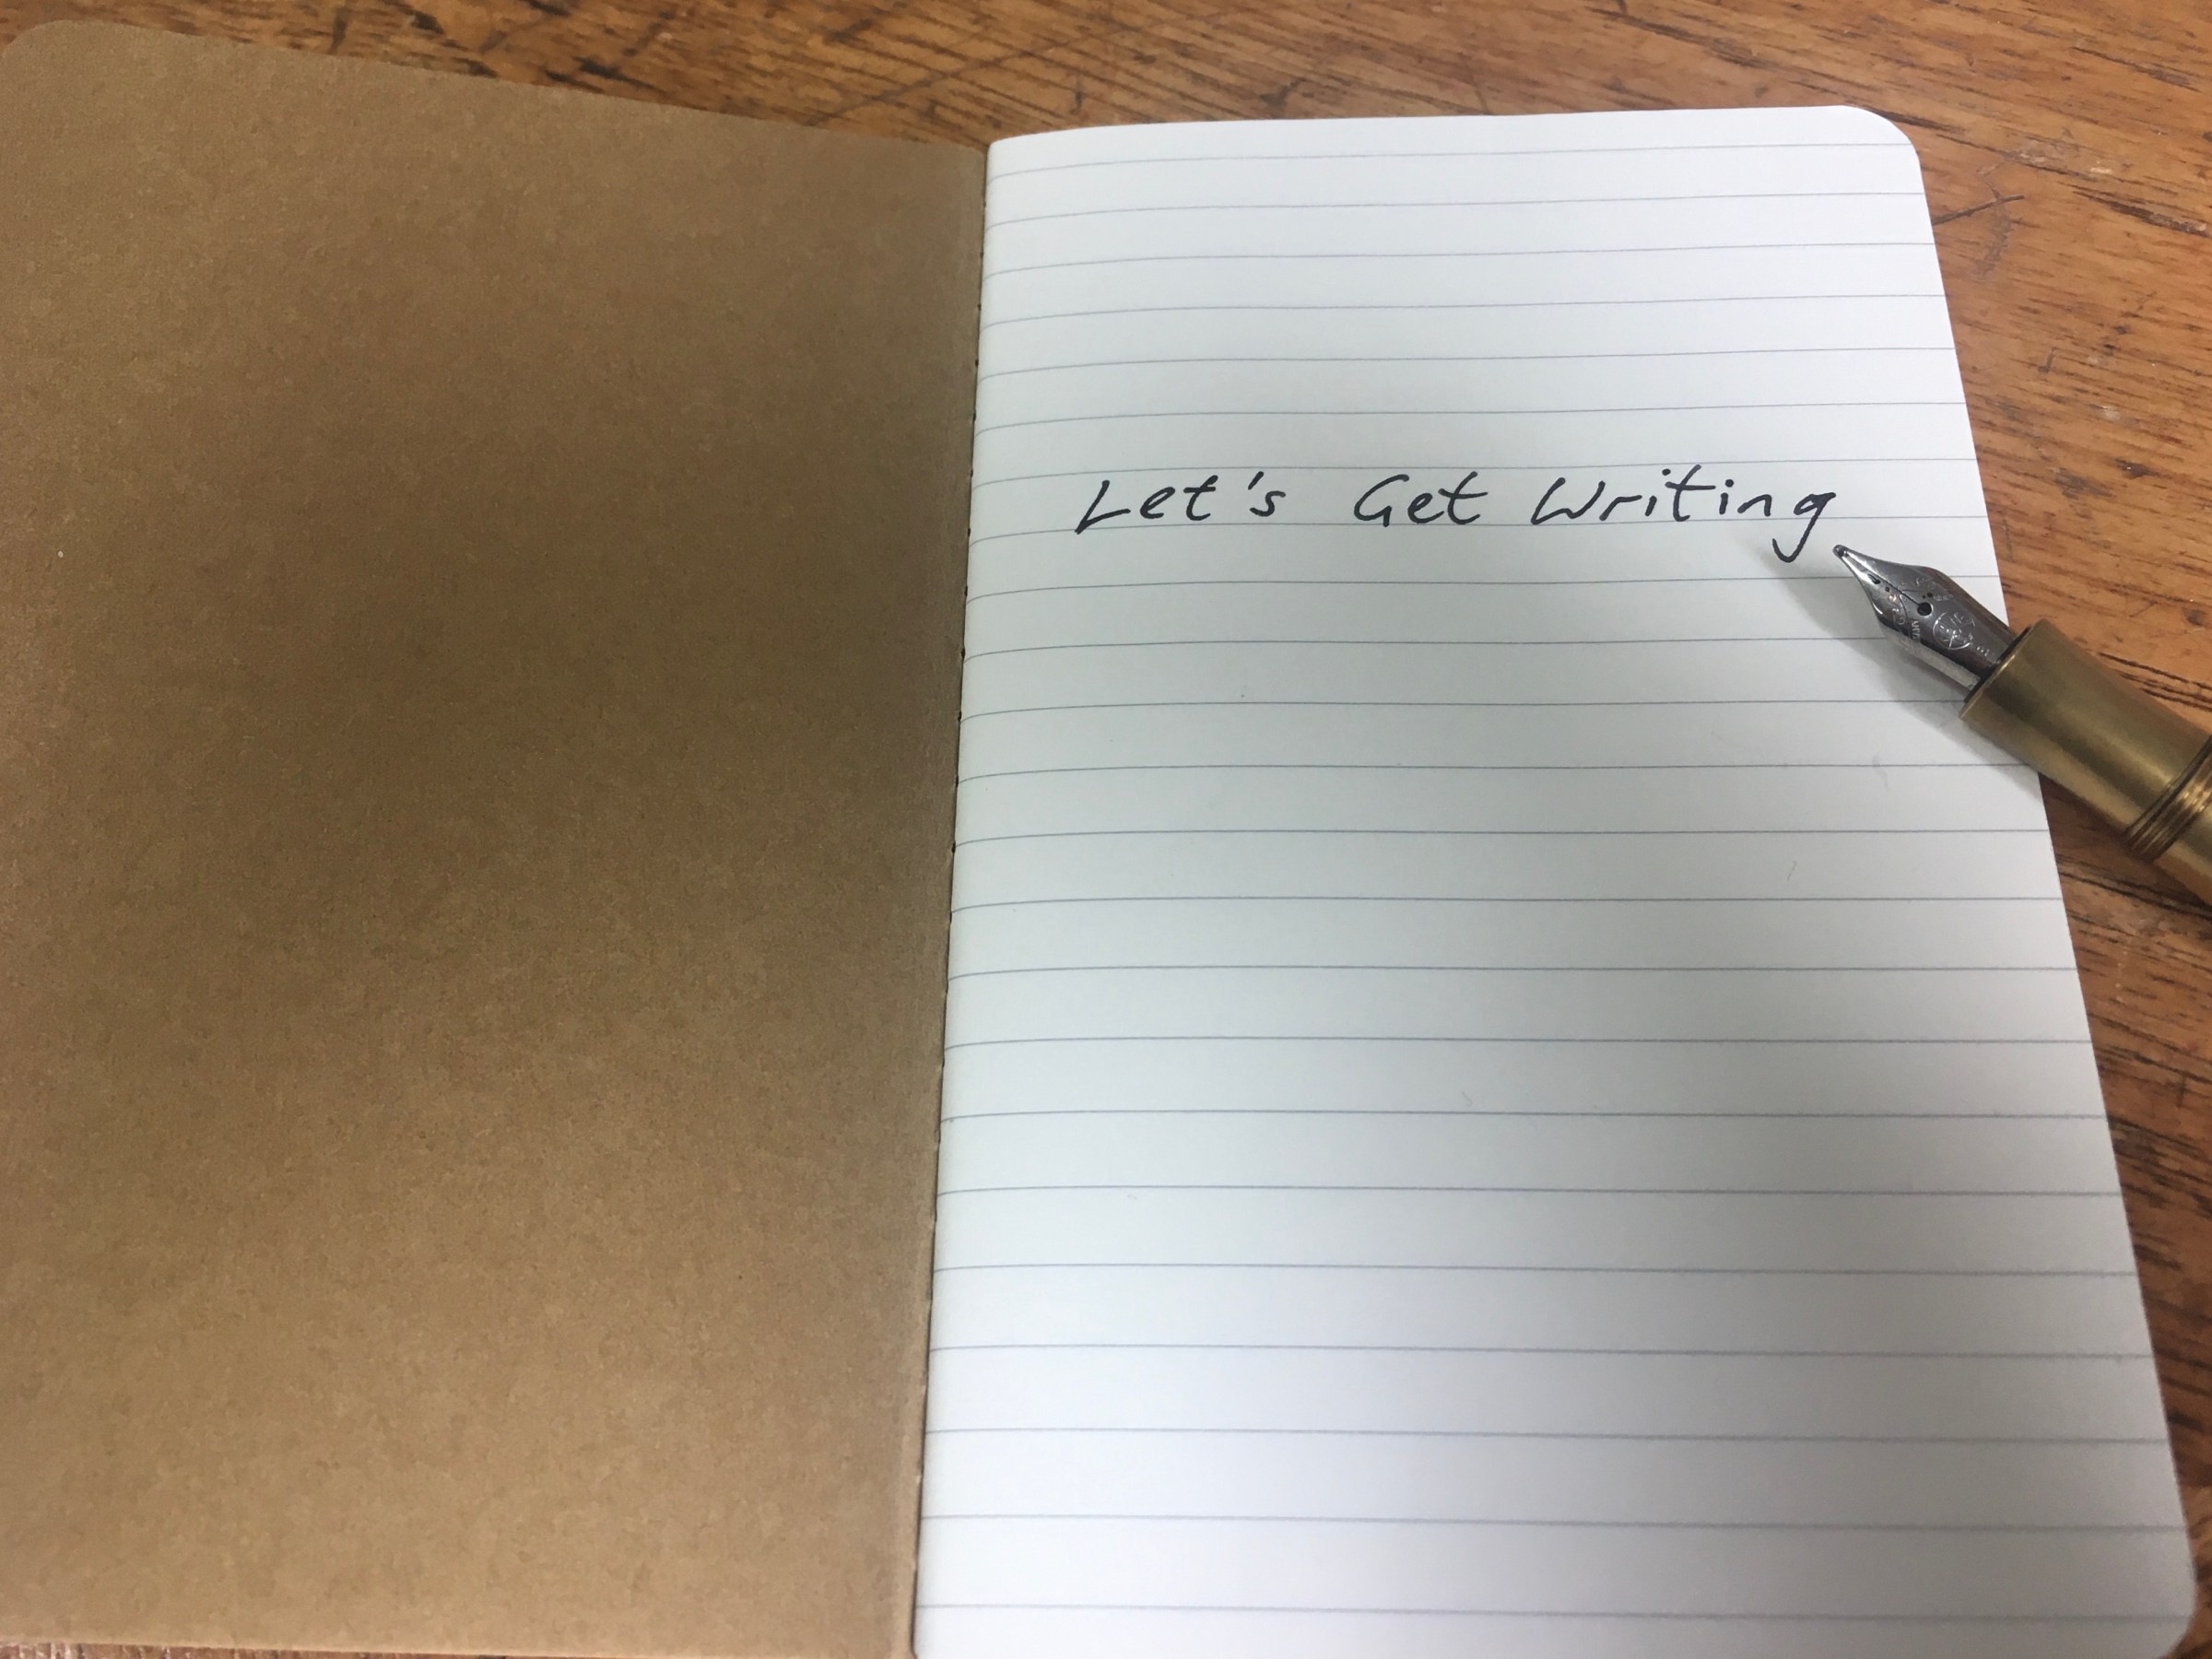 A title image for the 'Let's Get Writing' course